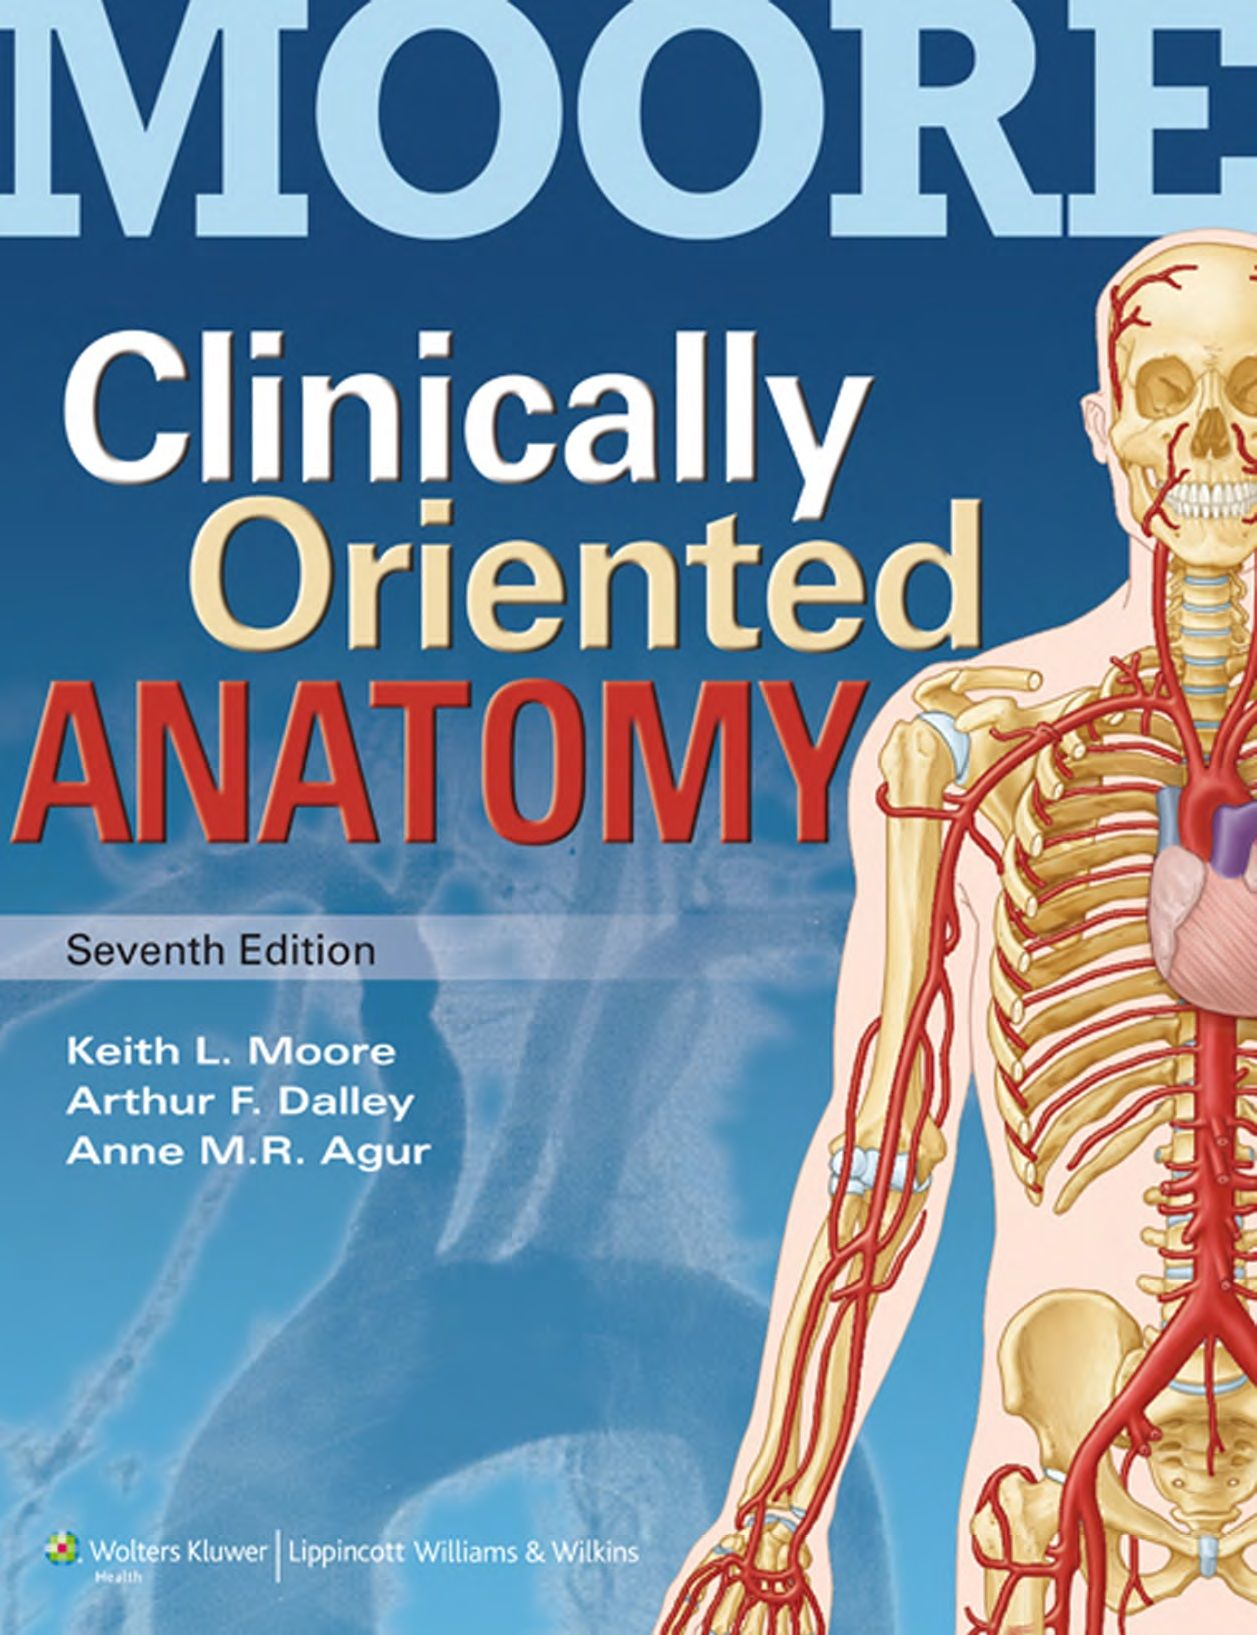 Clinically Oriented Anatomy 7th Edition PDF | Pinterest | Anatomy ...